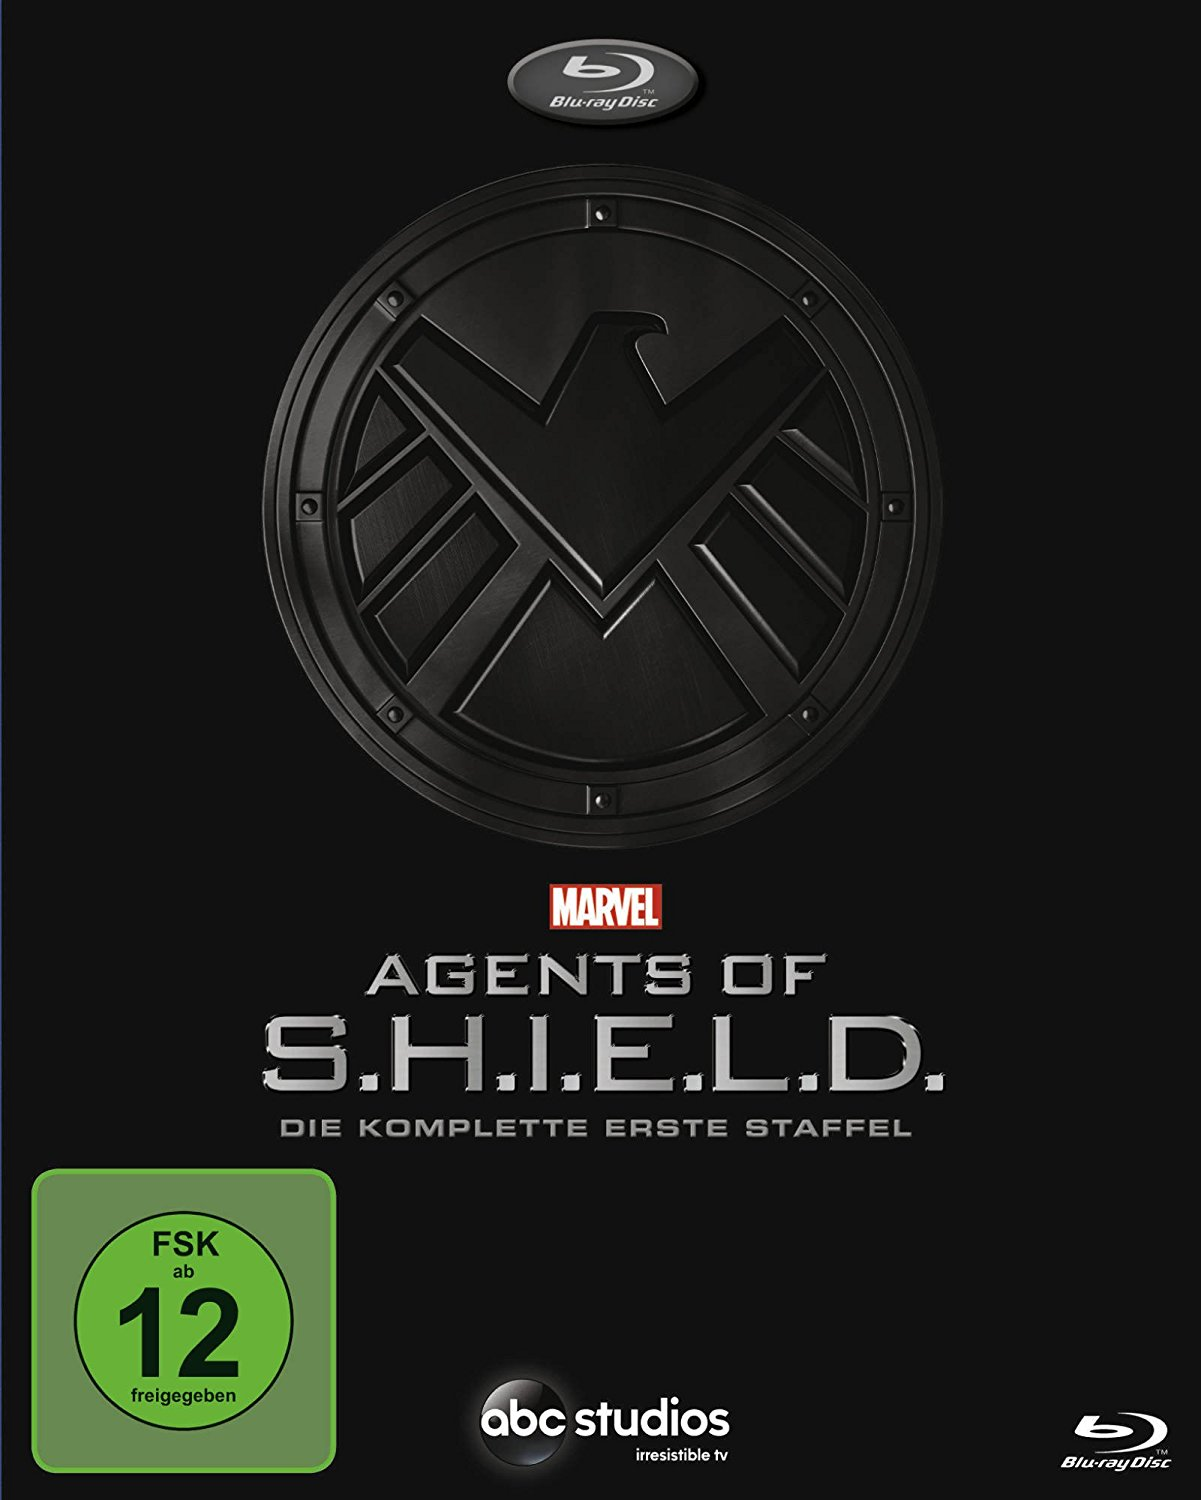 Marvel's Agents of Shield Staffel 1 bei Amazon bestellen